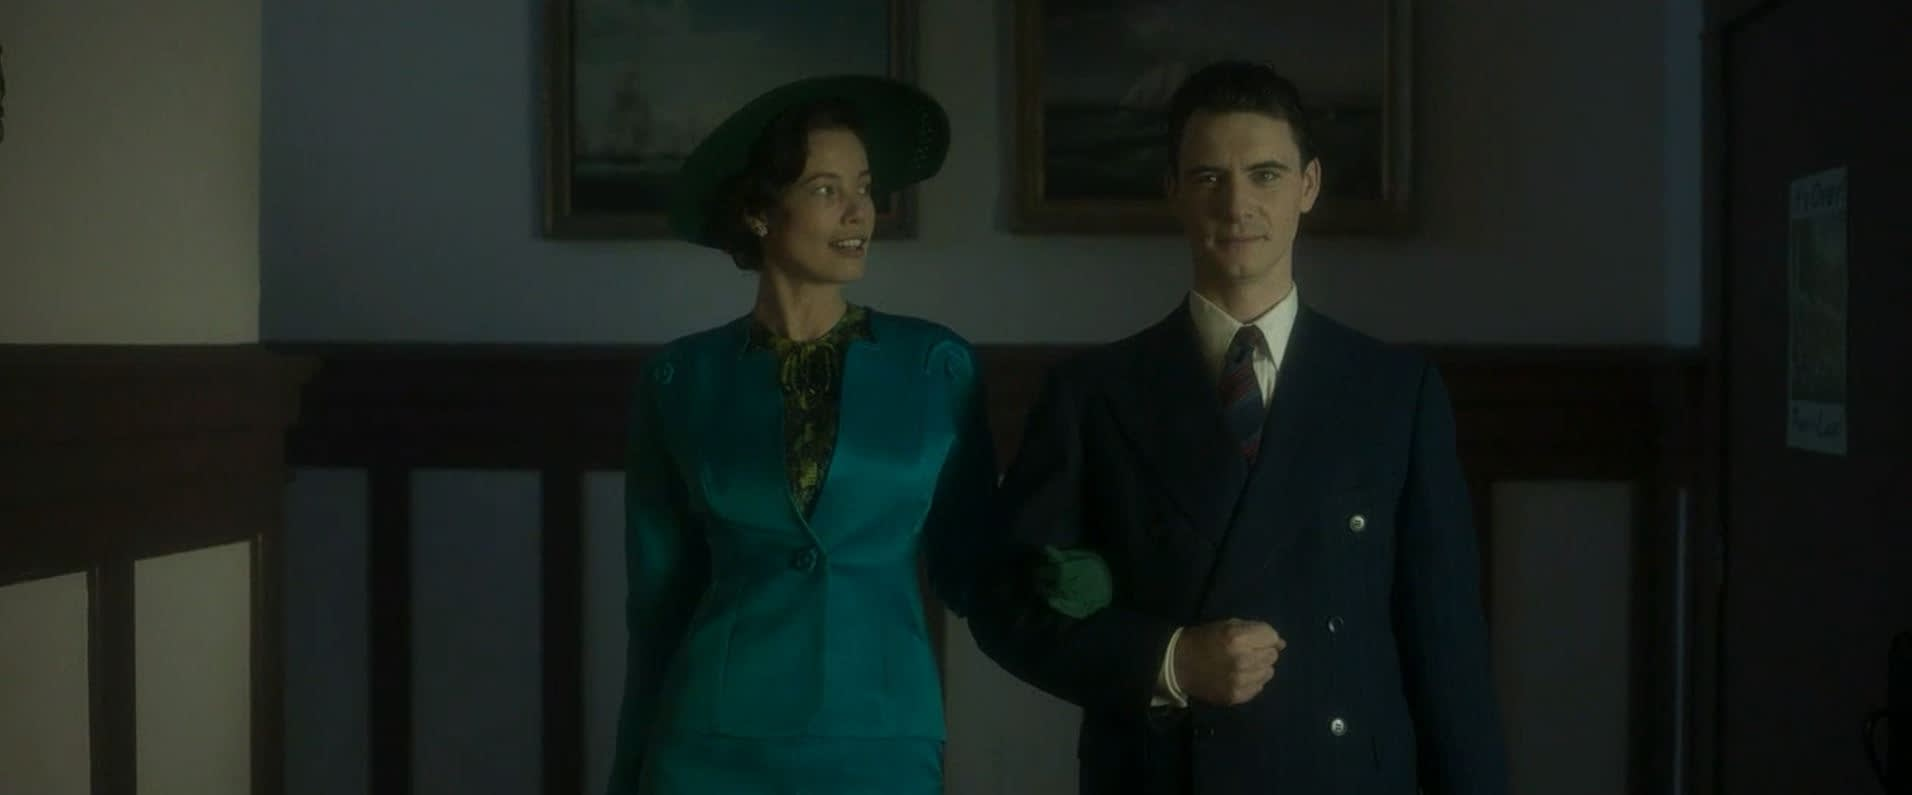 Harry Lloyd and Stephanie Corneliussen as Charles Xavier and Gabrielle Haller